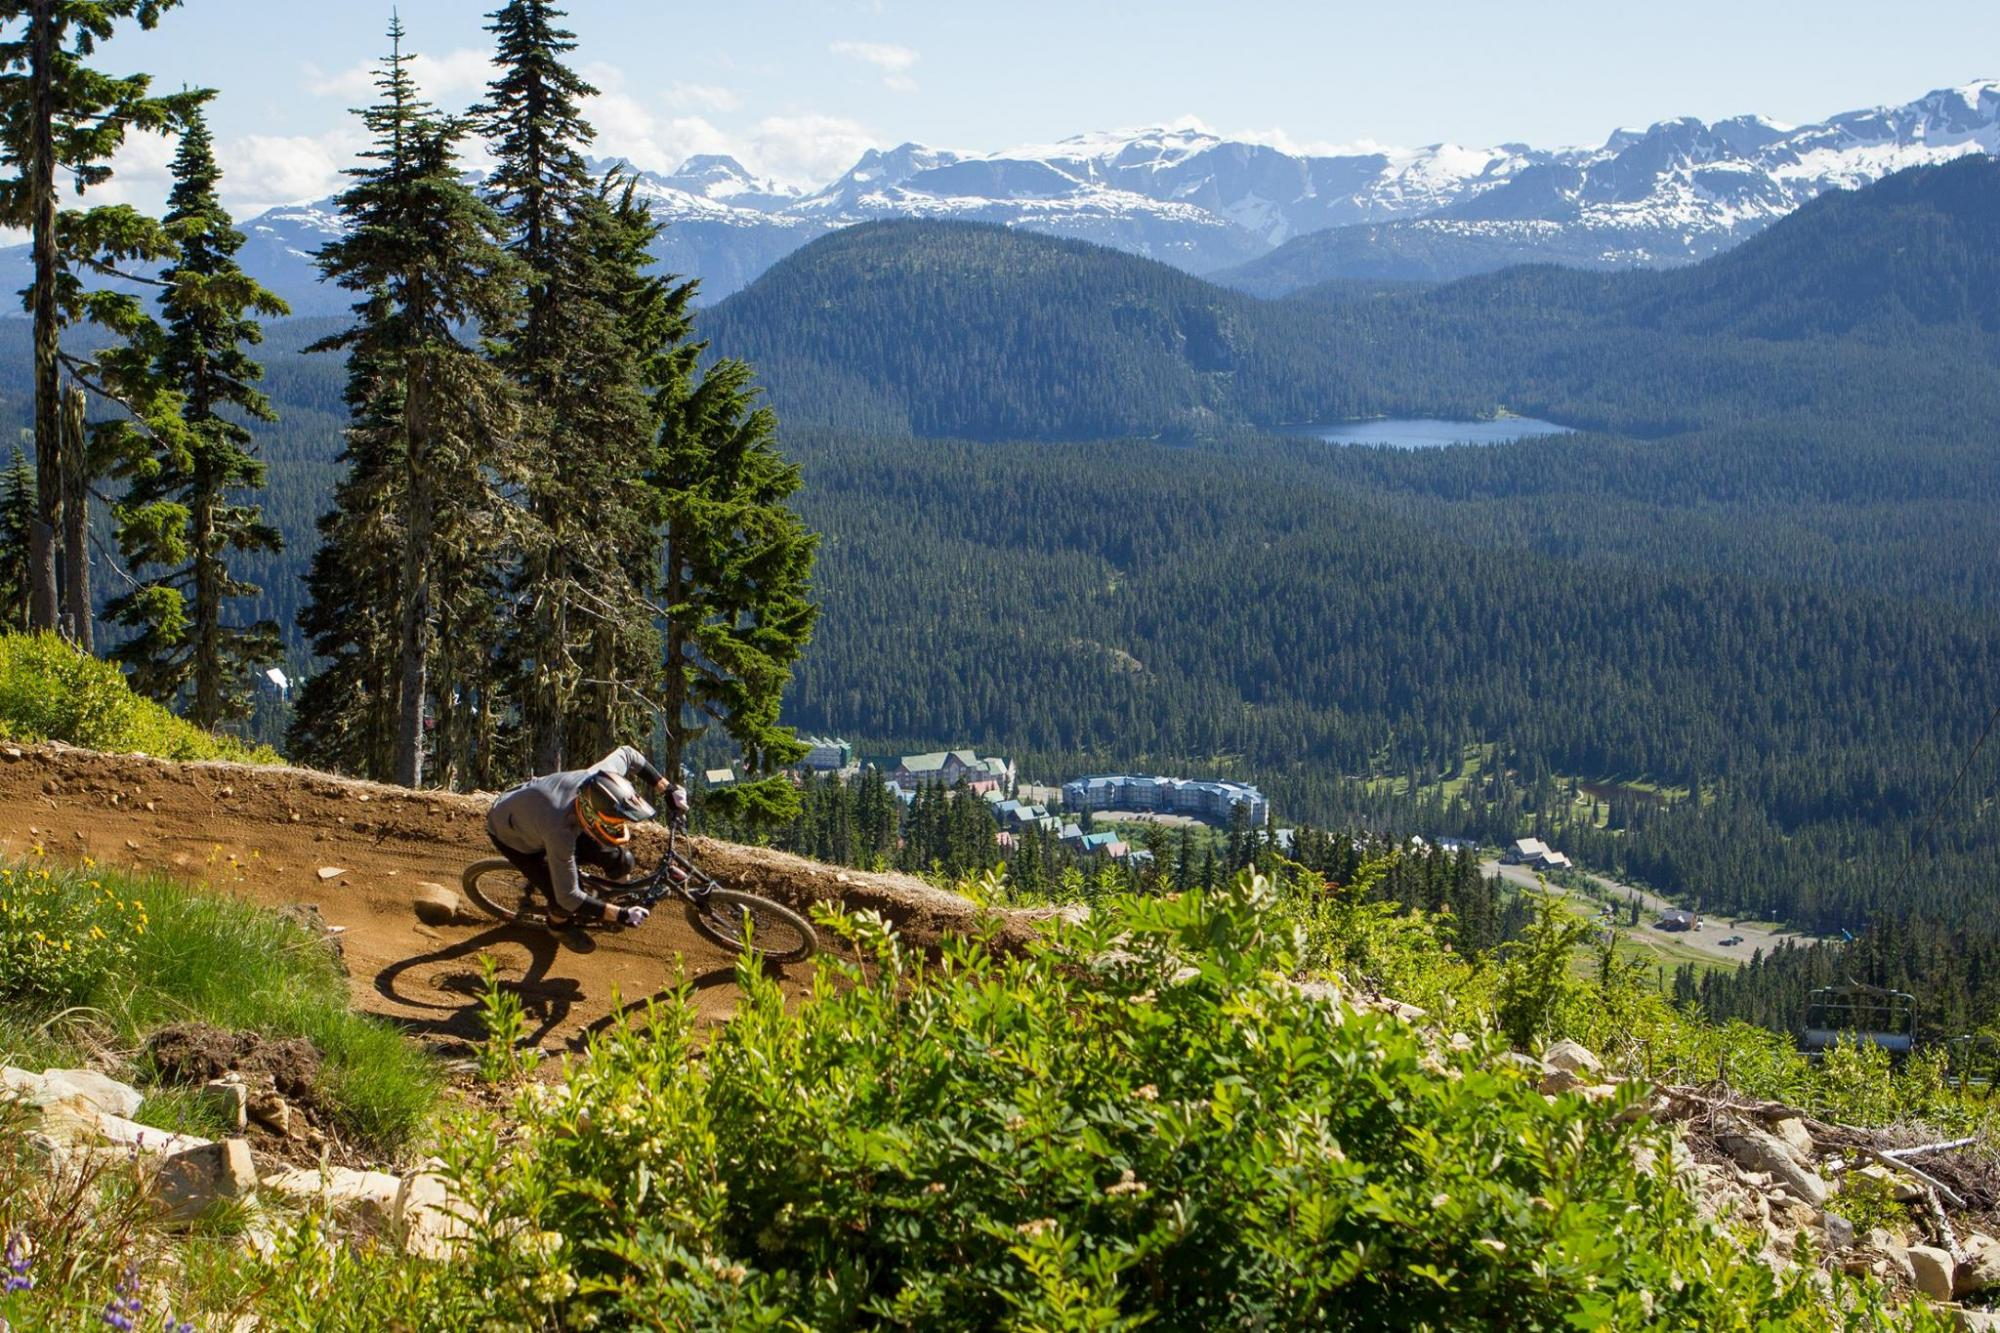 Mount Washington Biking